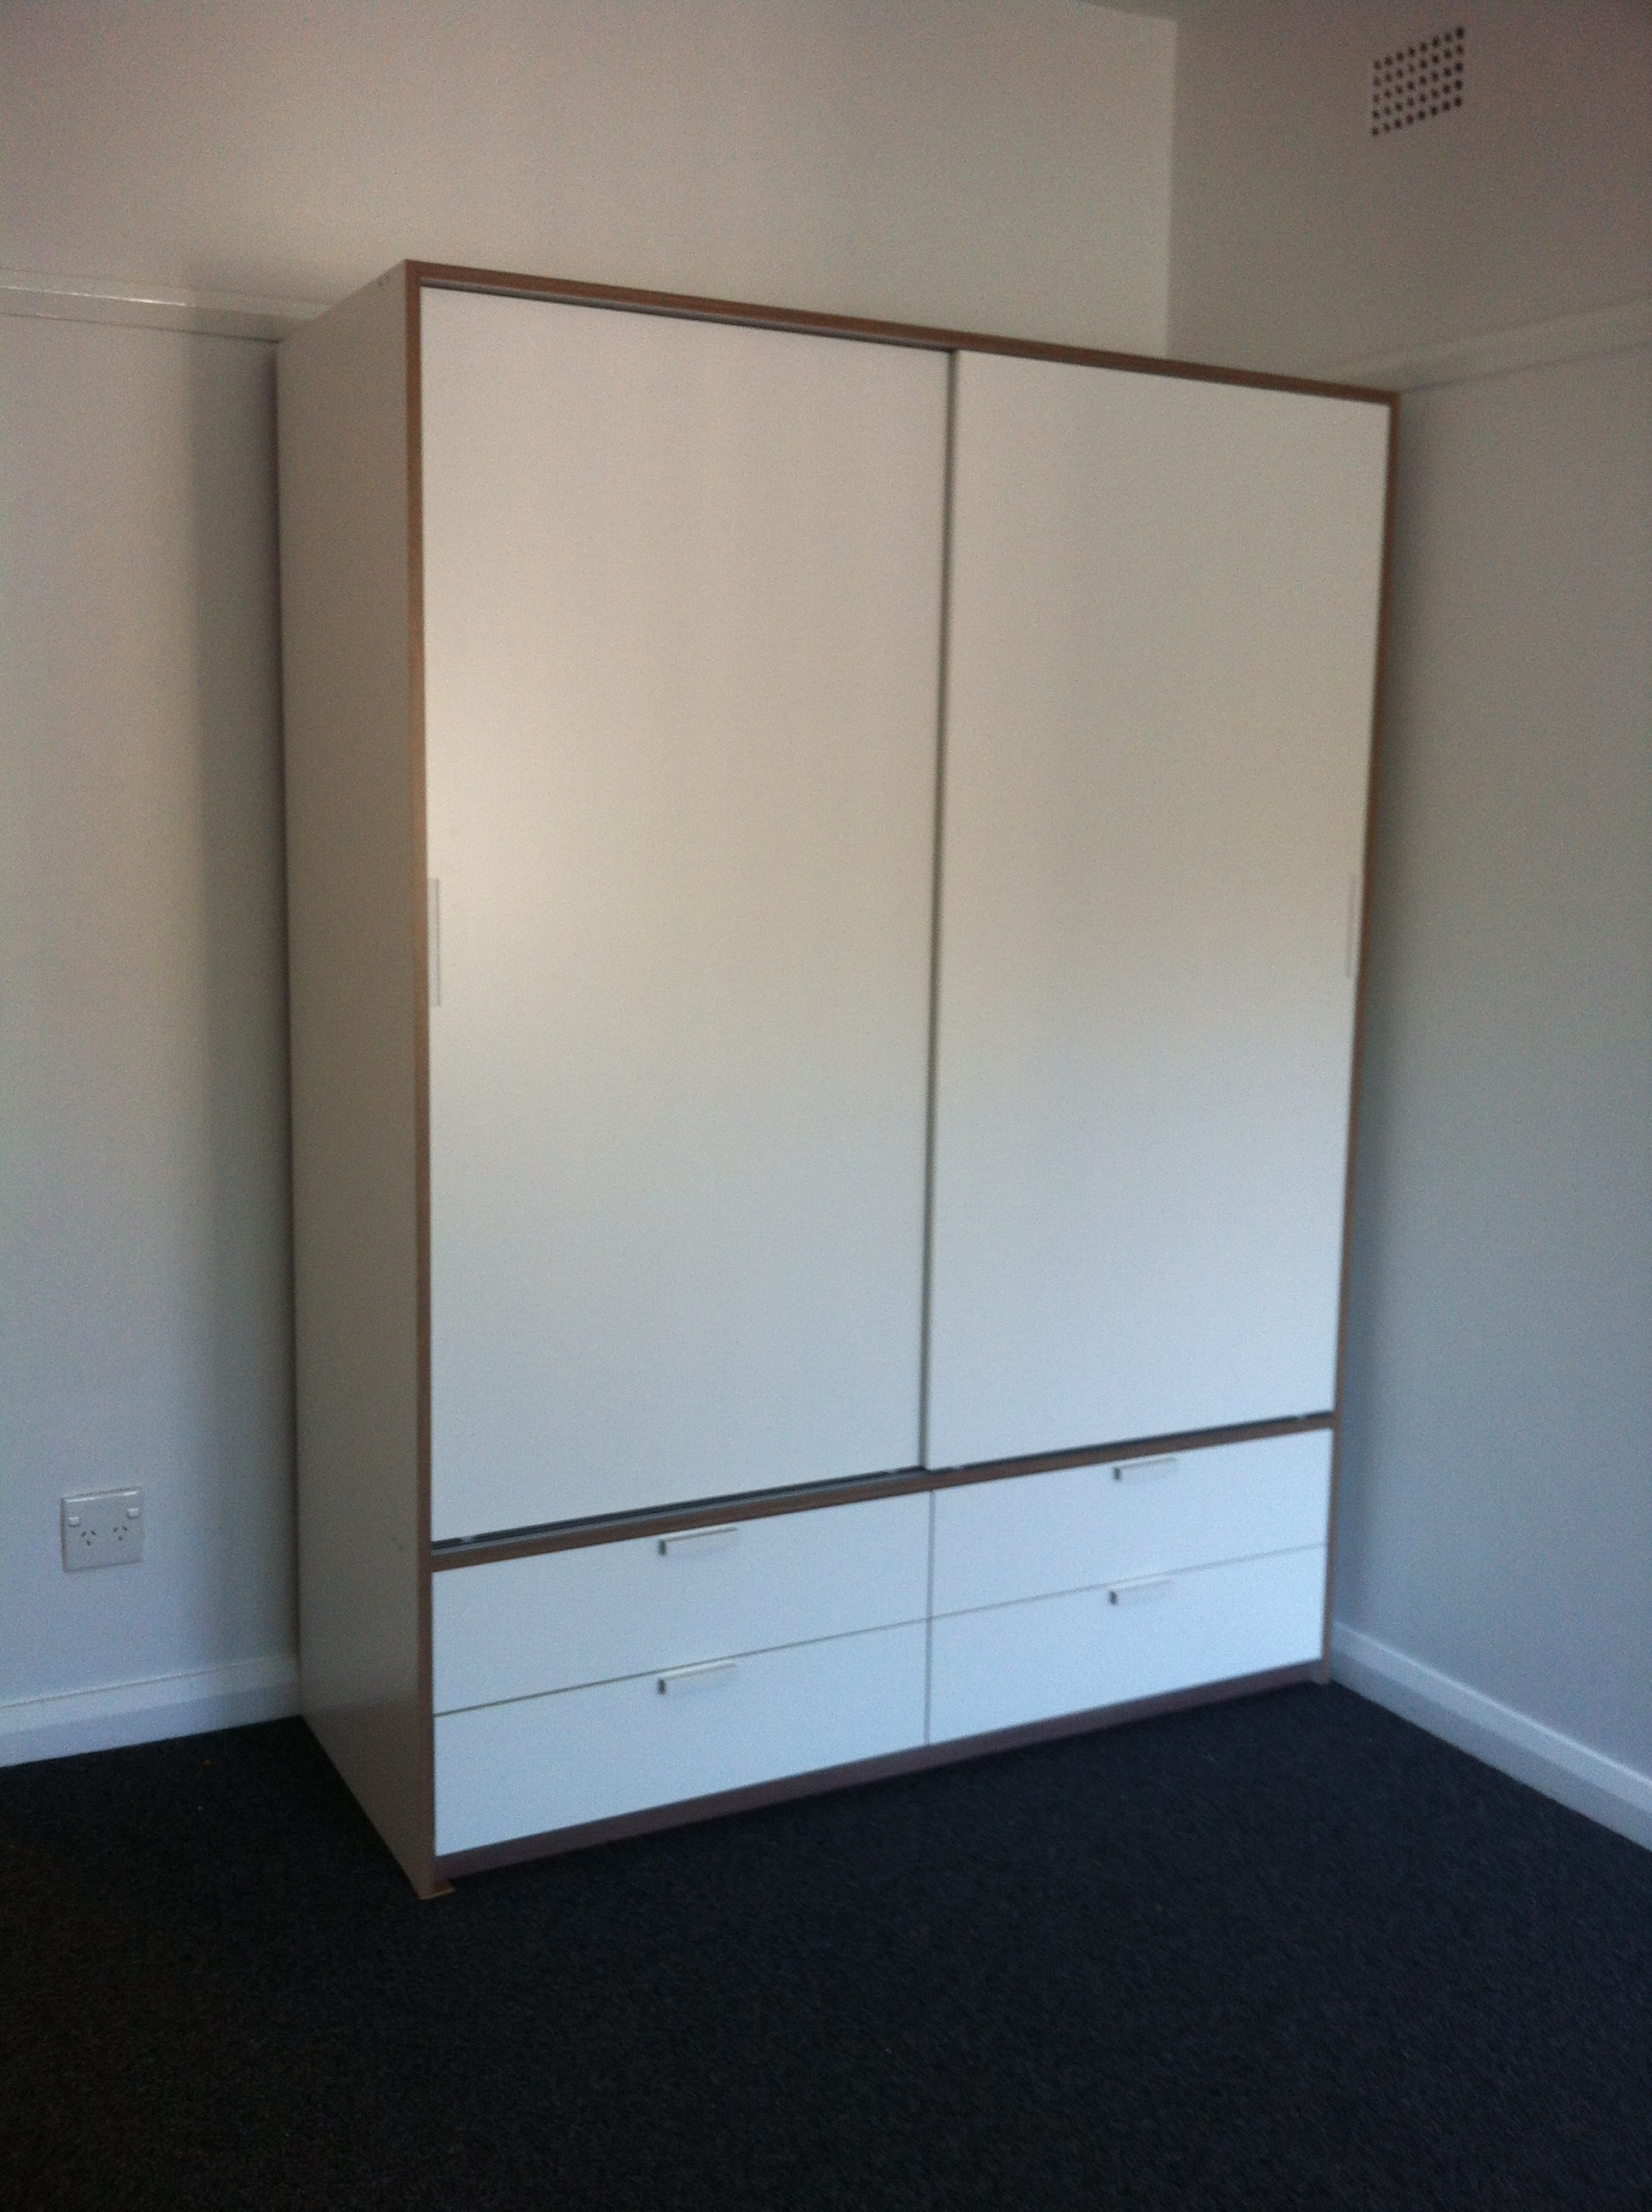 Flatpack Assembly | GetIt Installed - Flatpack Assembly and Kitchen ...